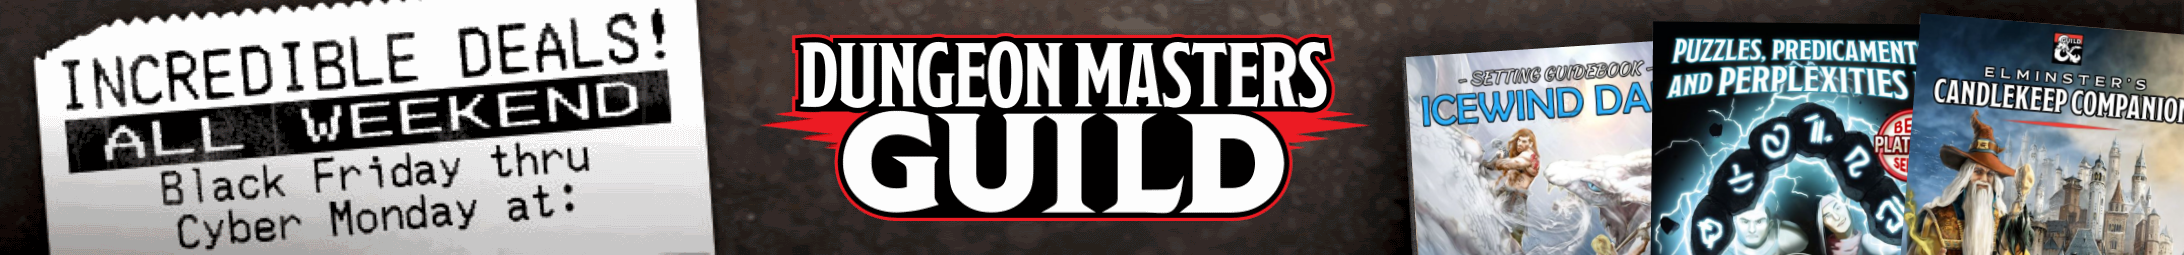 Black Friday/Cyber Monday @ Dungeon Masters Guild